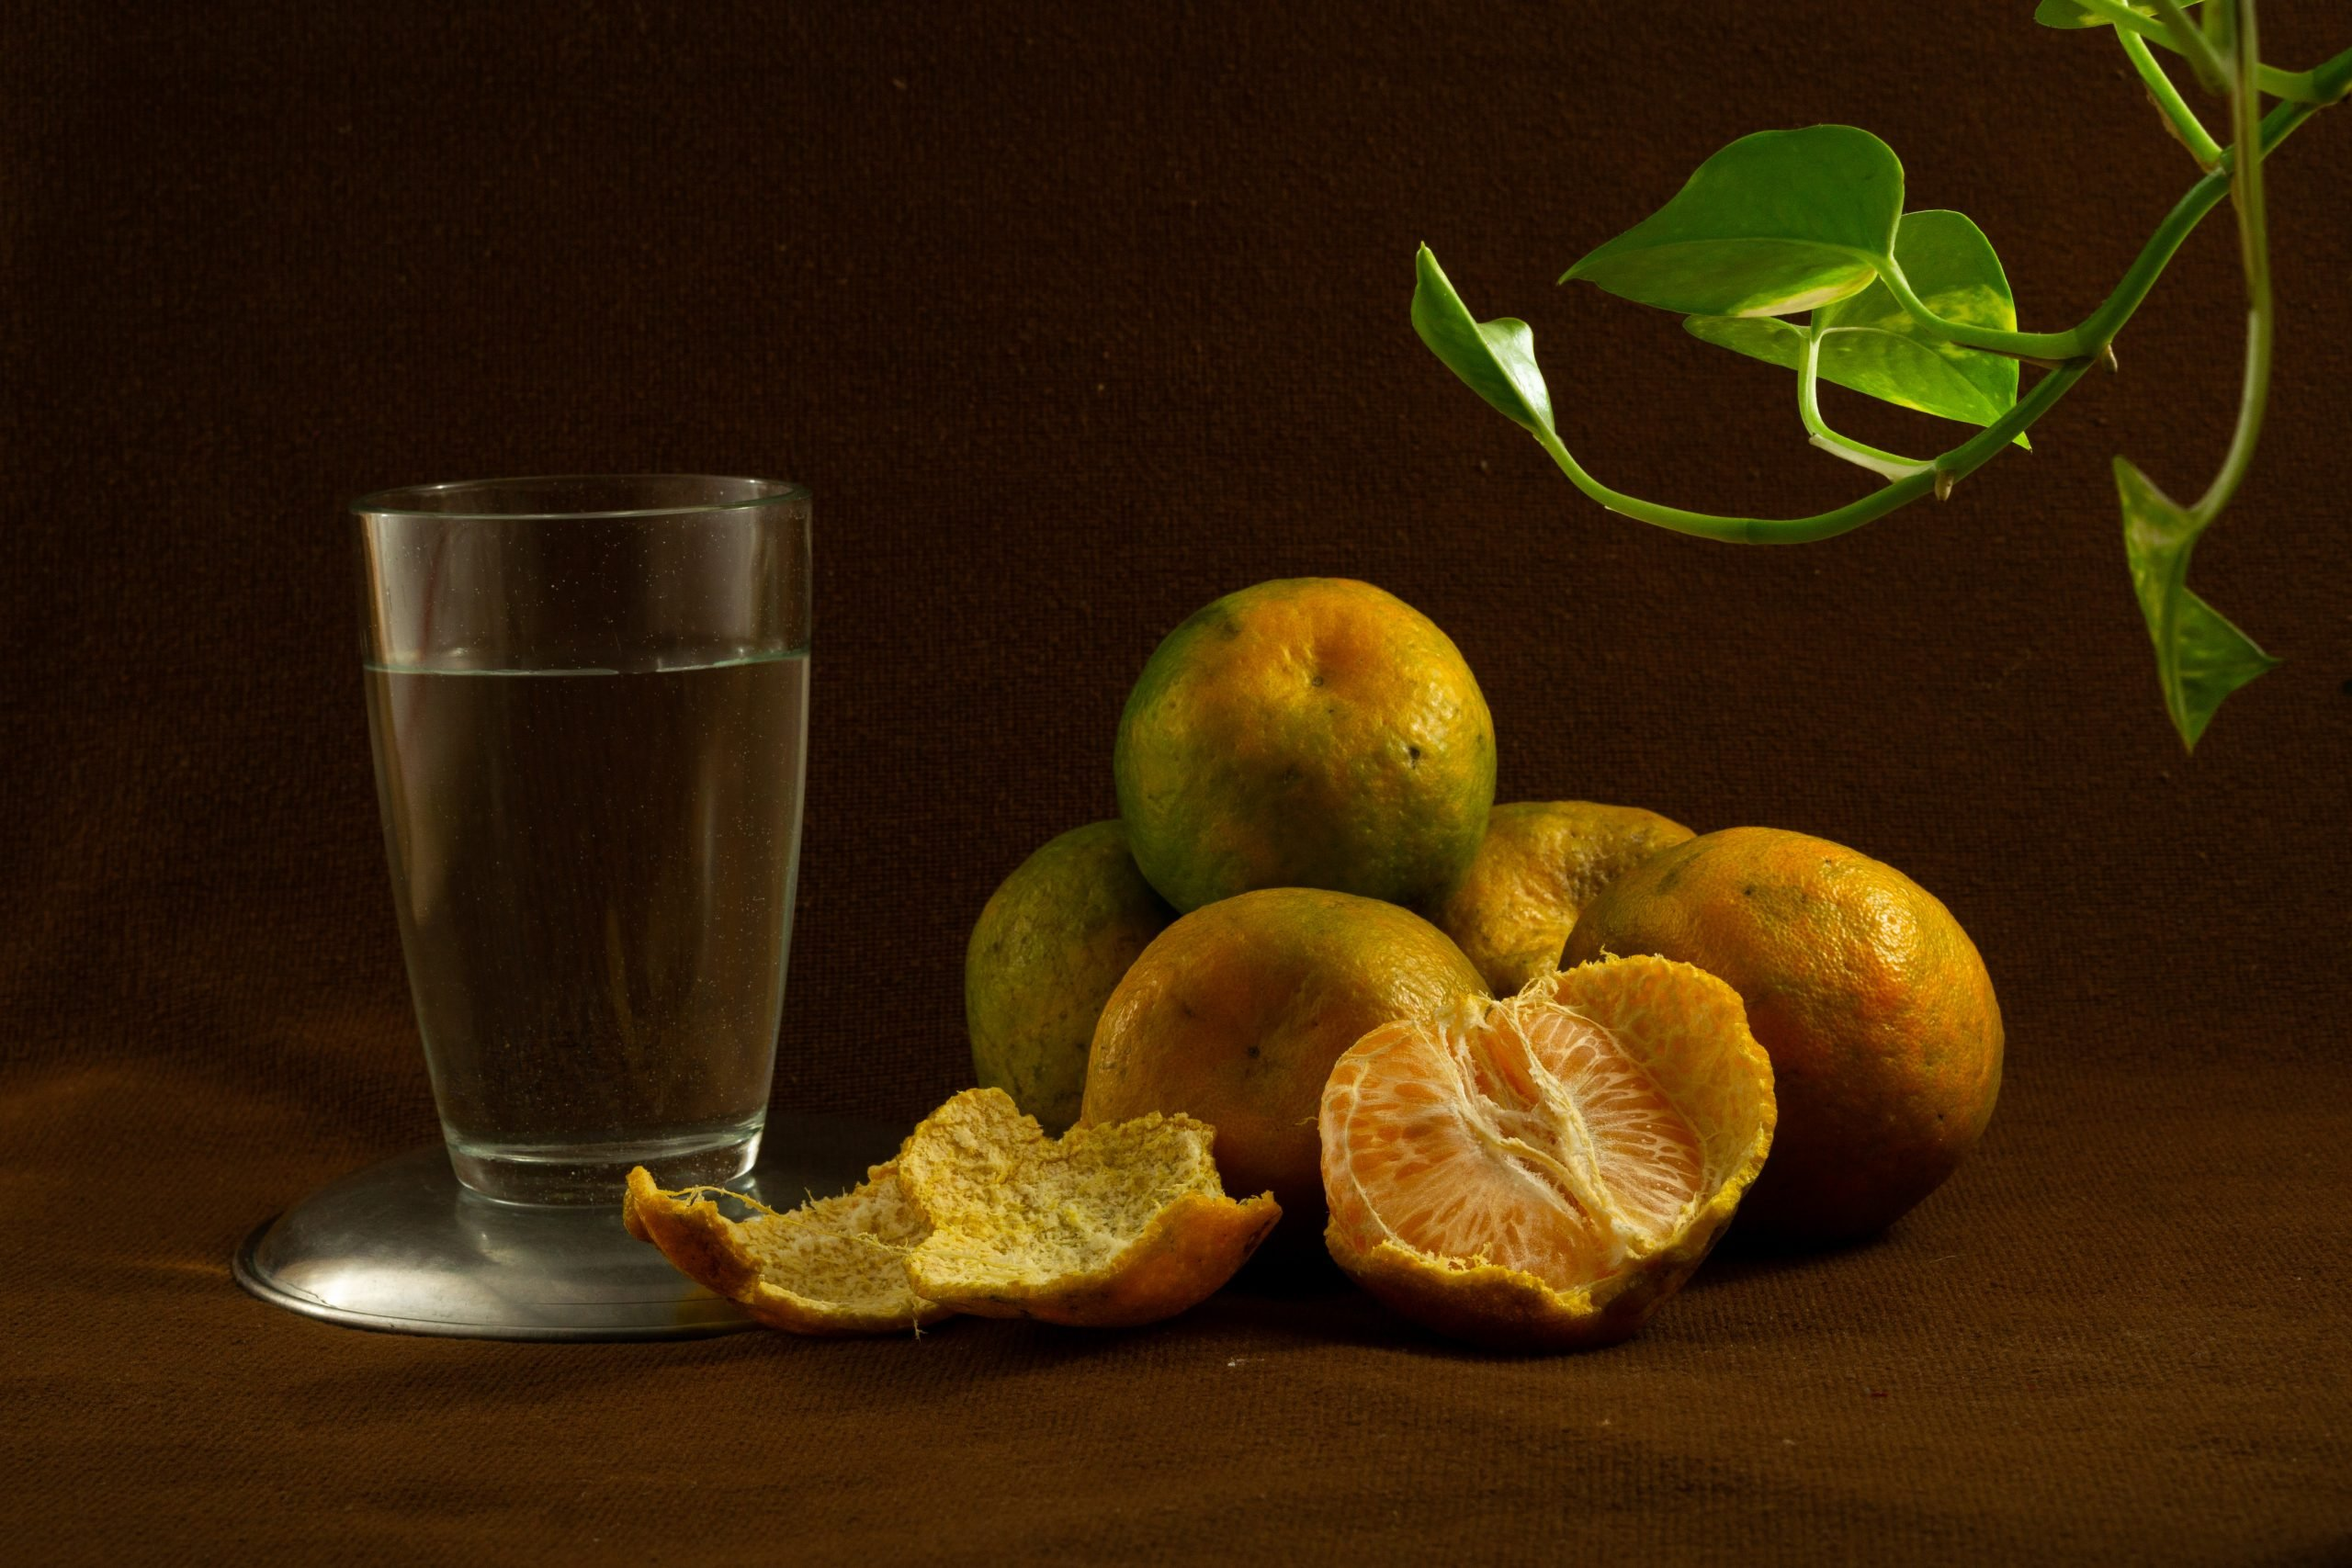 Fresh oranges and a glass of water